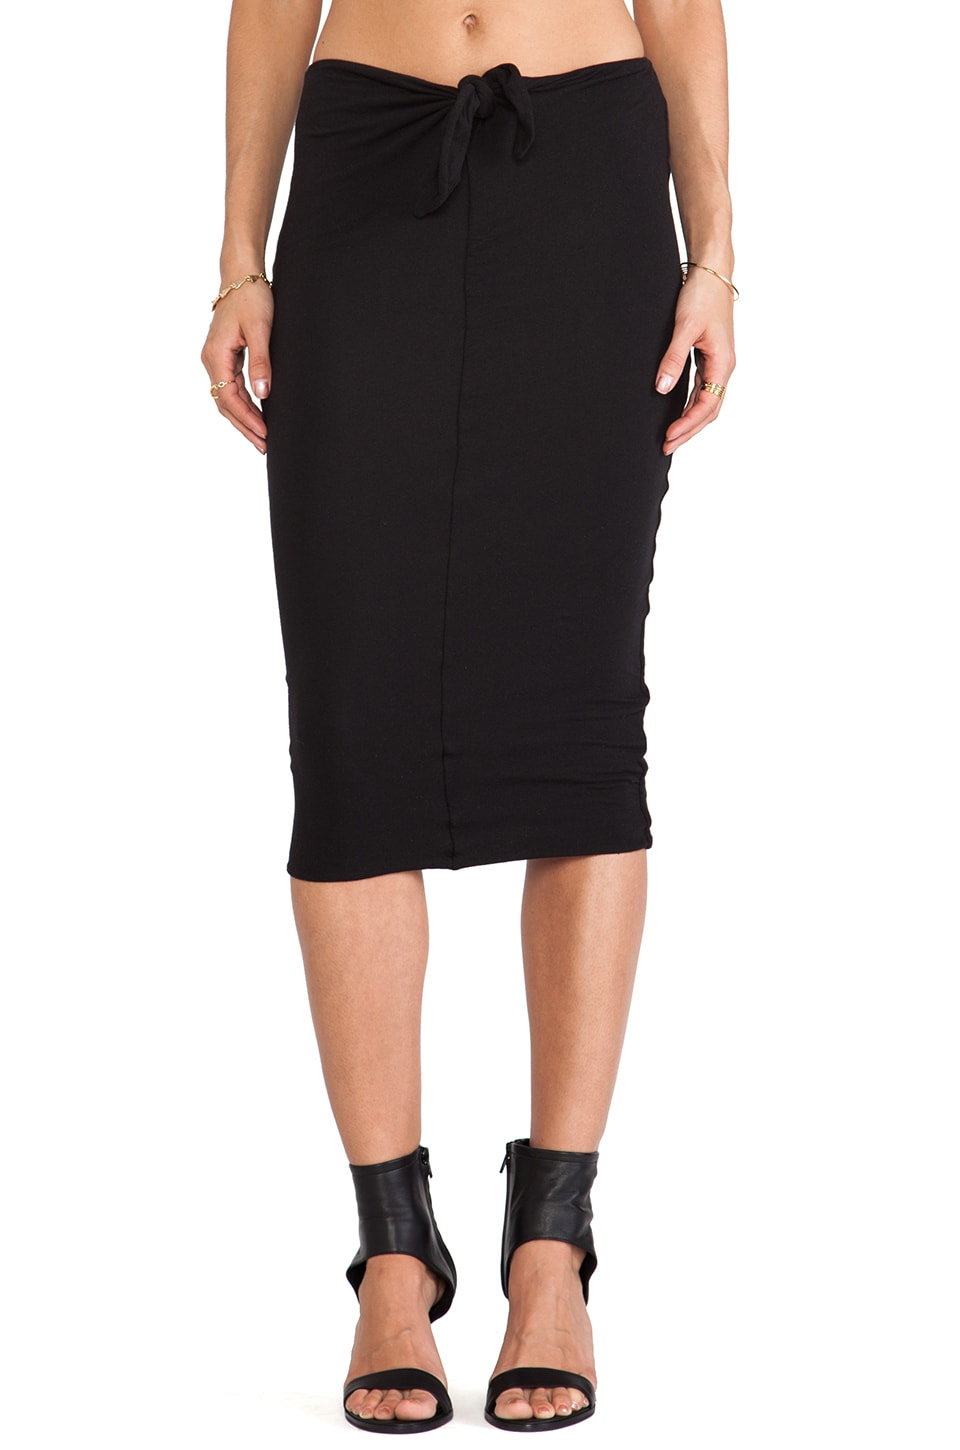 James Perse Tie Front Skirt in Black